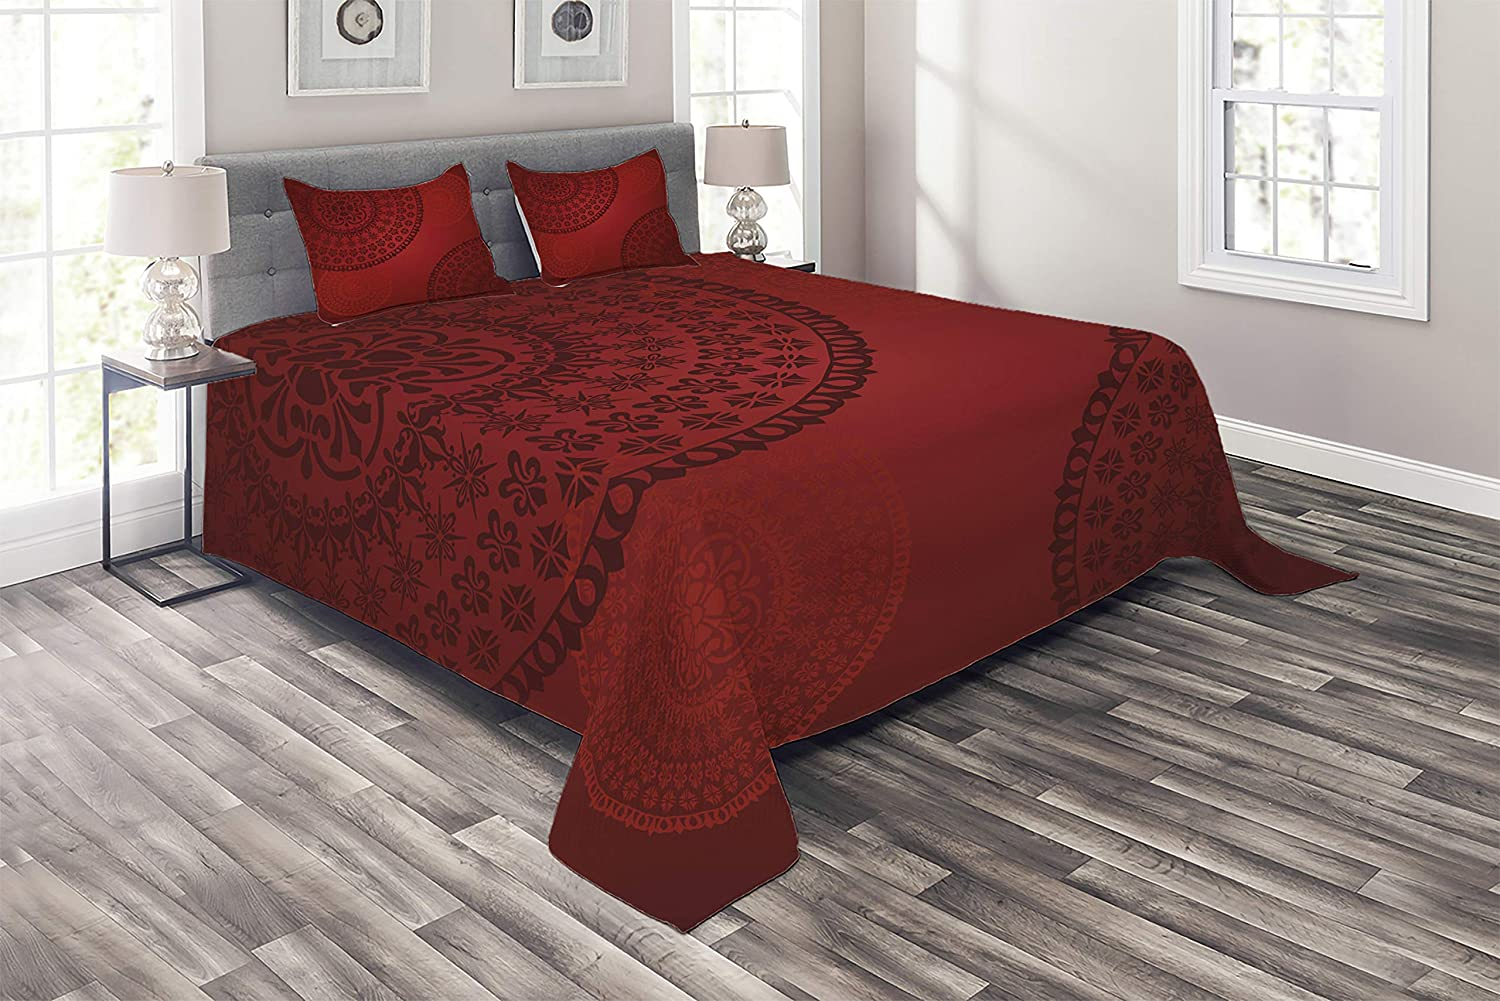 Lunarable Burgundy Coverlet, Old Fashioned Floral Oriental Round Mandala Motifs Traditional Design, 3 Piece Decorative Quilted Bedspread Set with 2 Pillow Shams, King Size, Burgundy Red